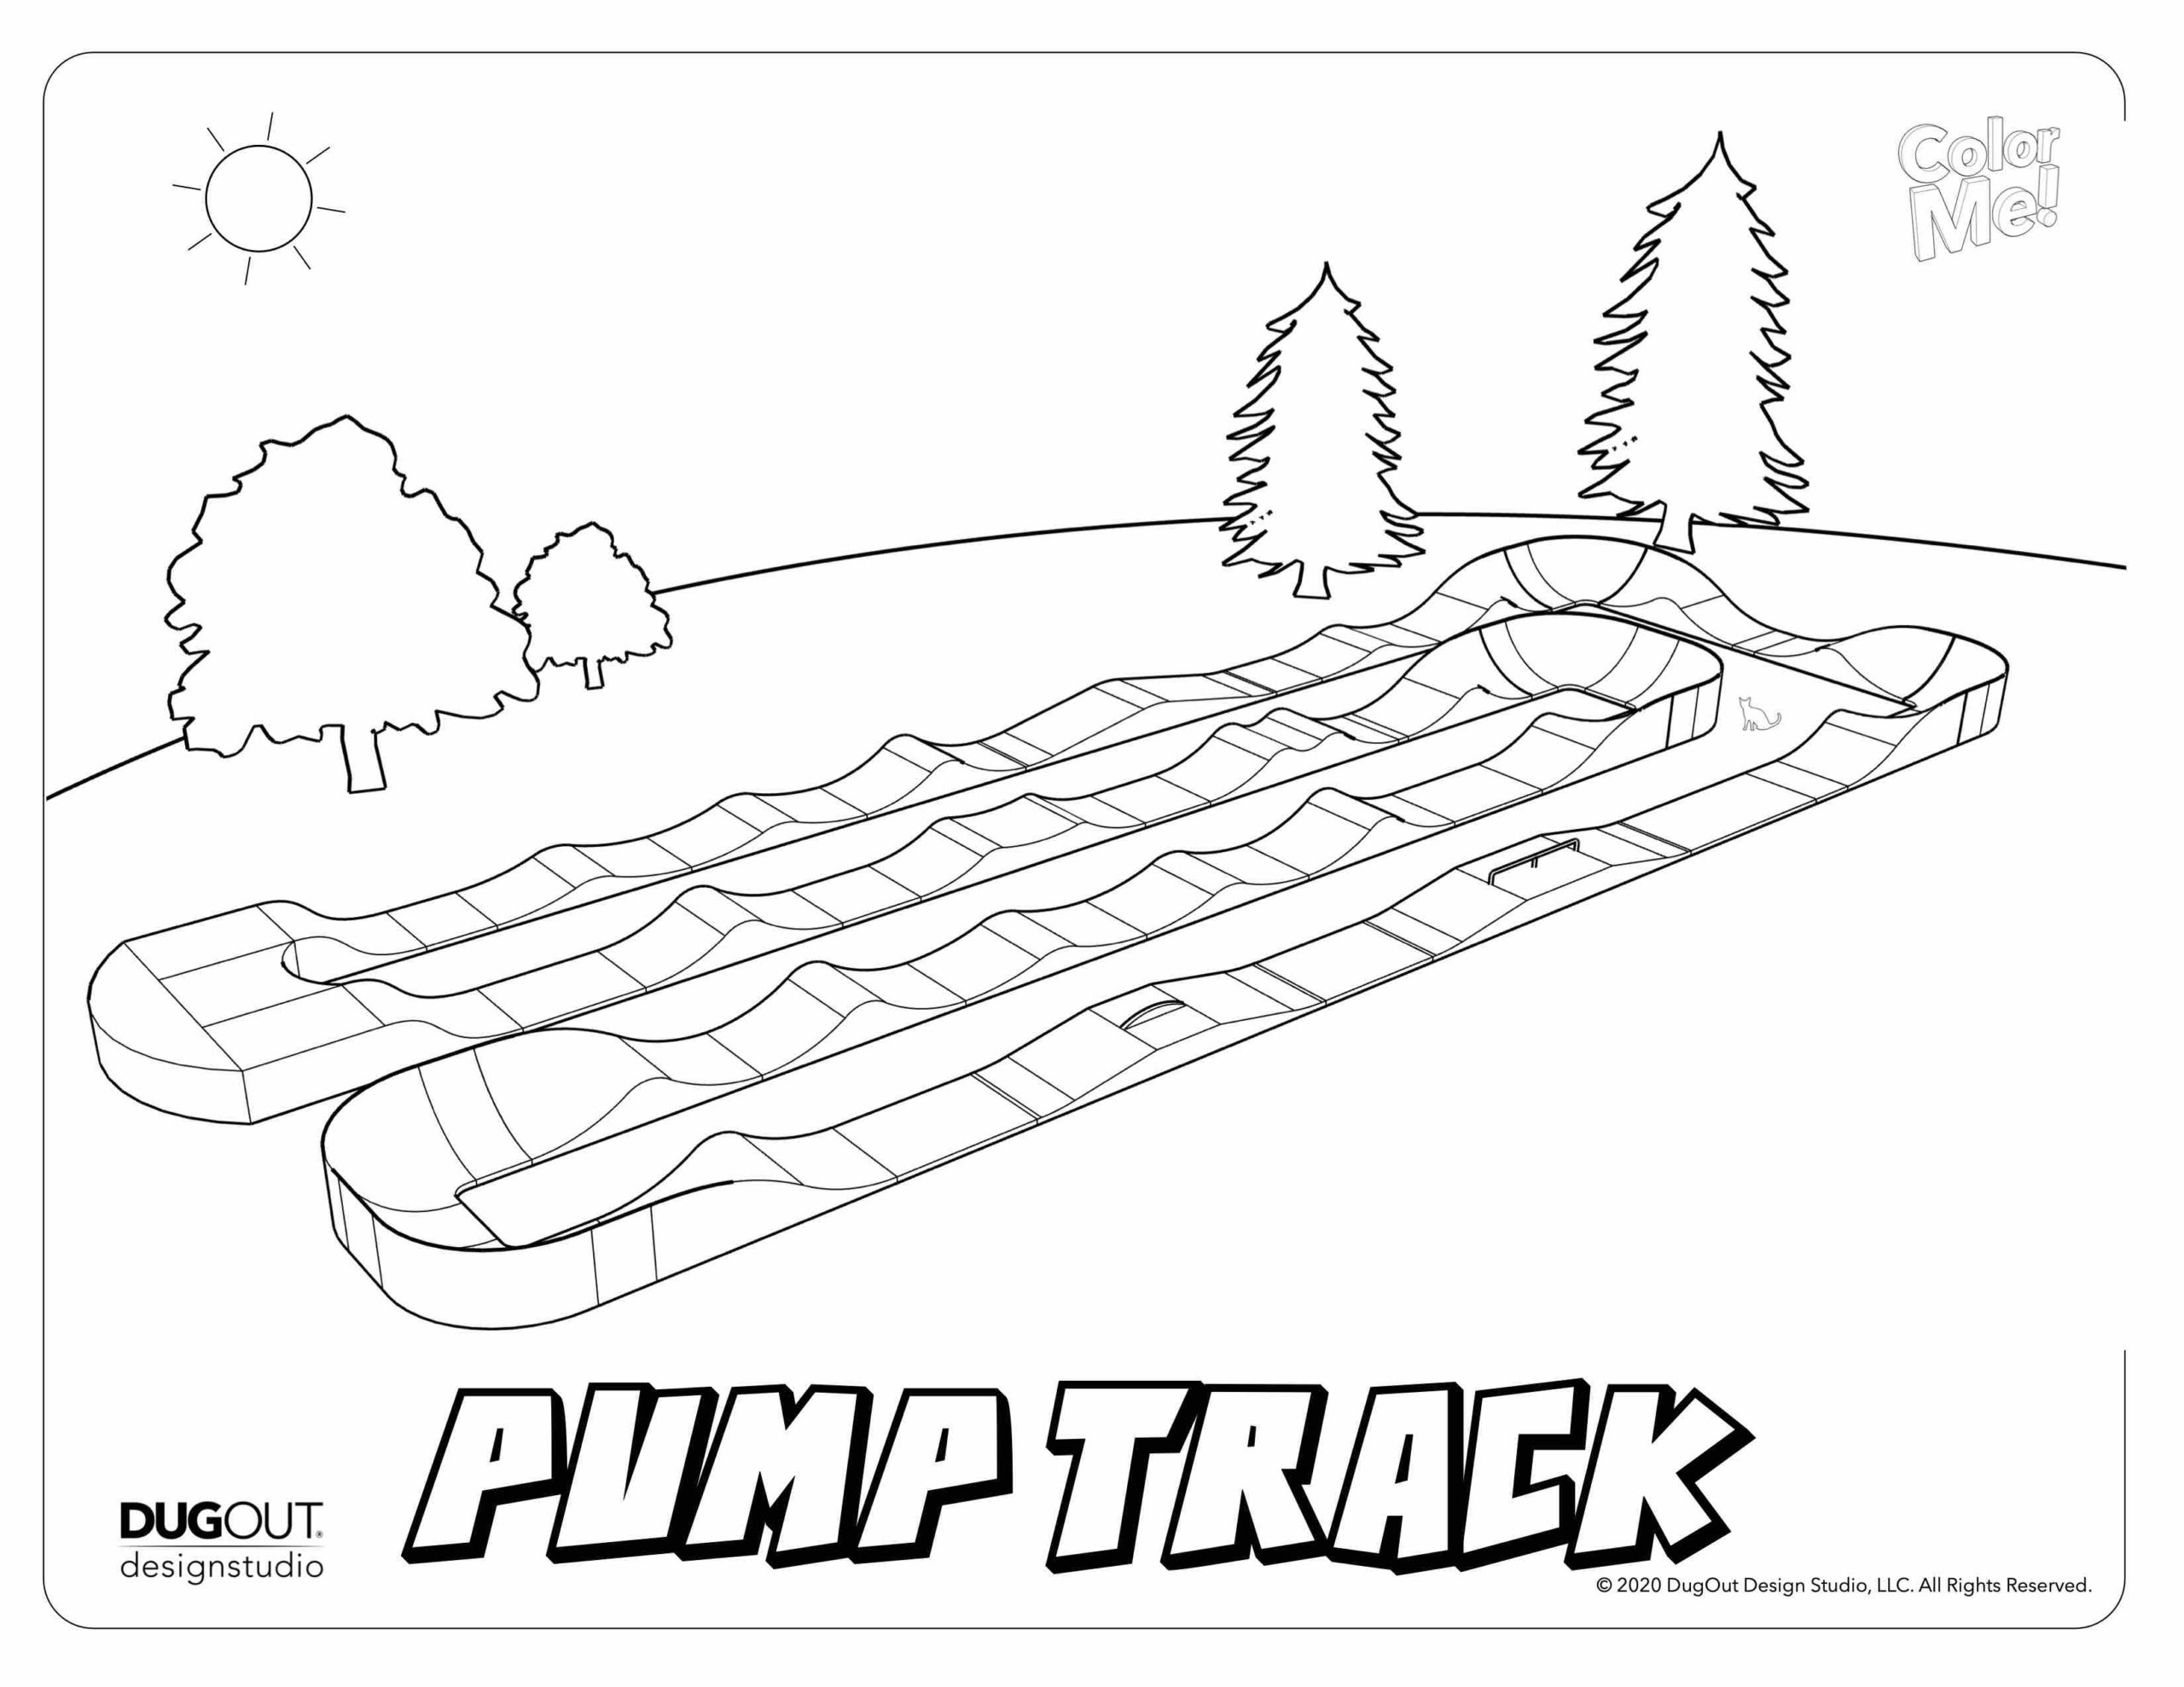 Pump Track Coloring page